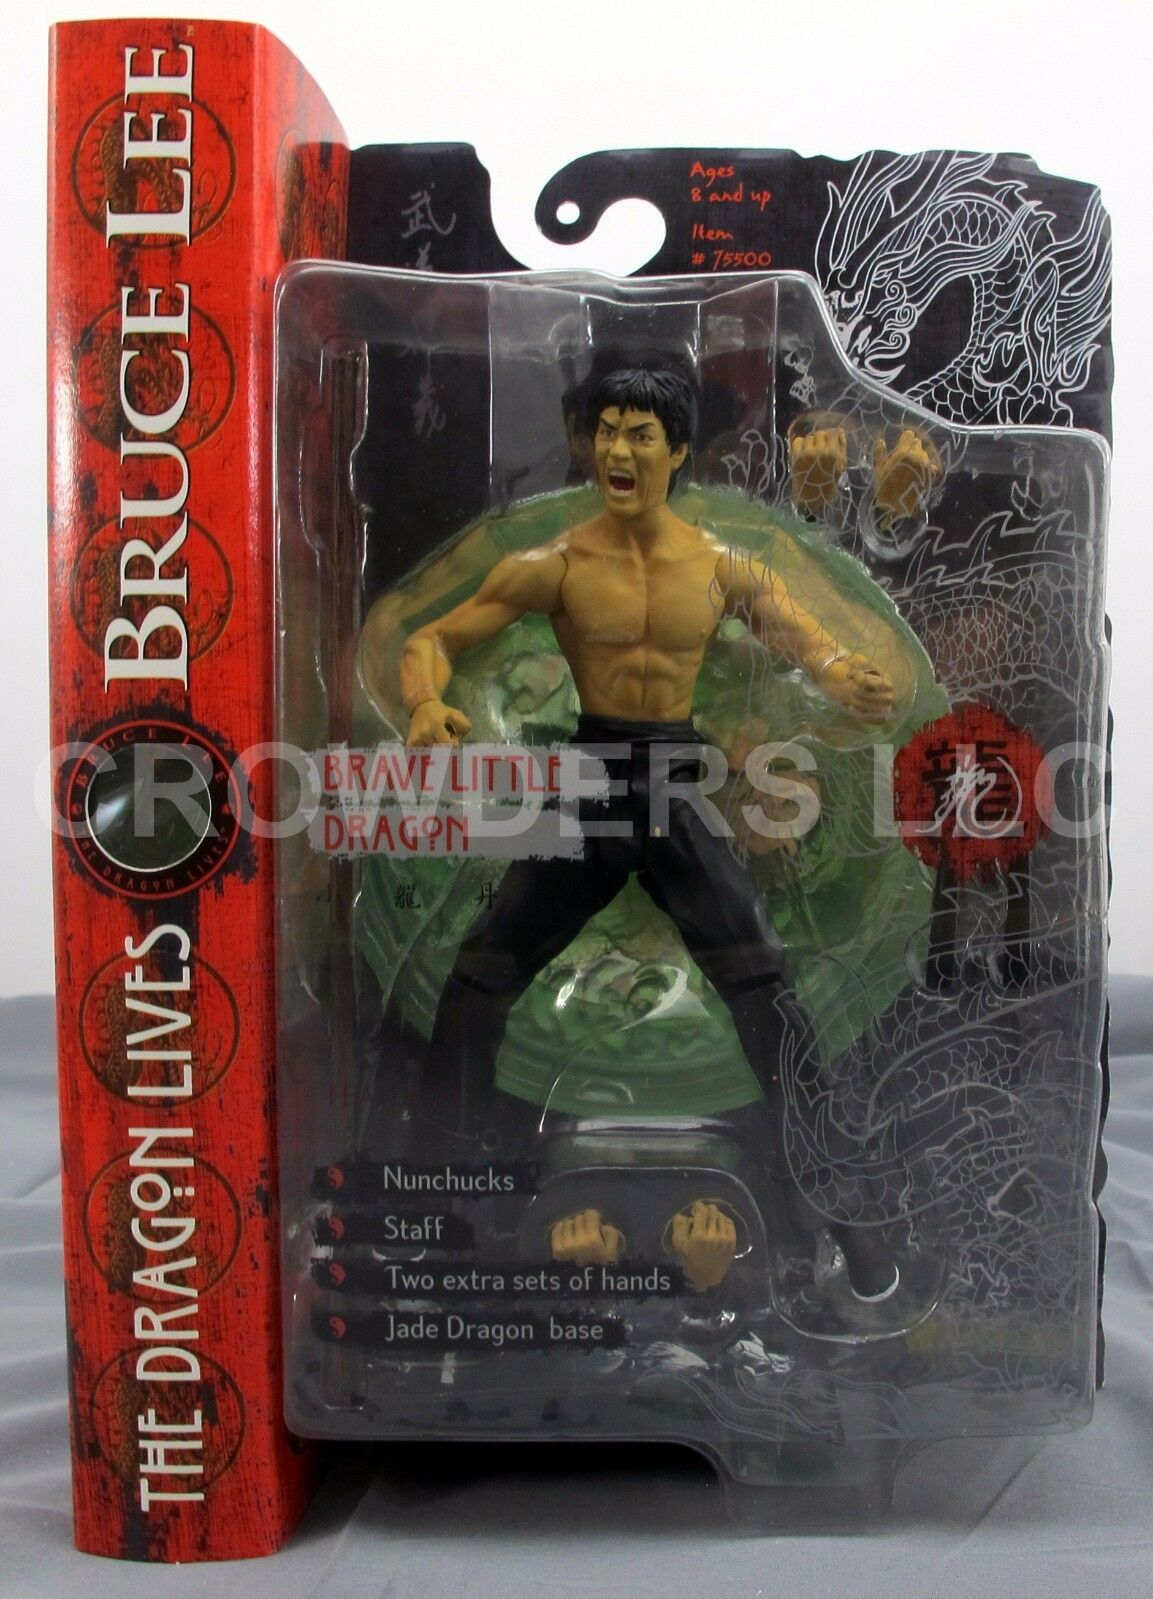 Bruce Lee The Dragon Lives BRAVE LITTLE DRAGON Open Mouth Variant Art Asylum NIP